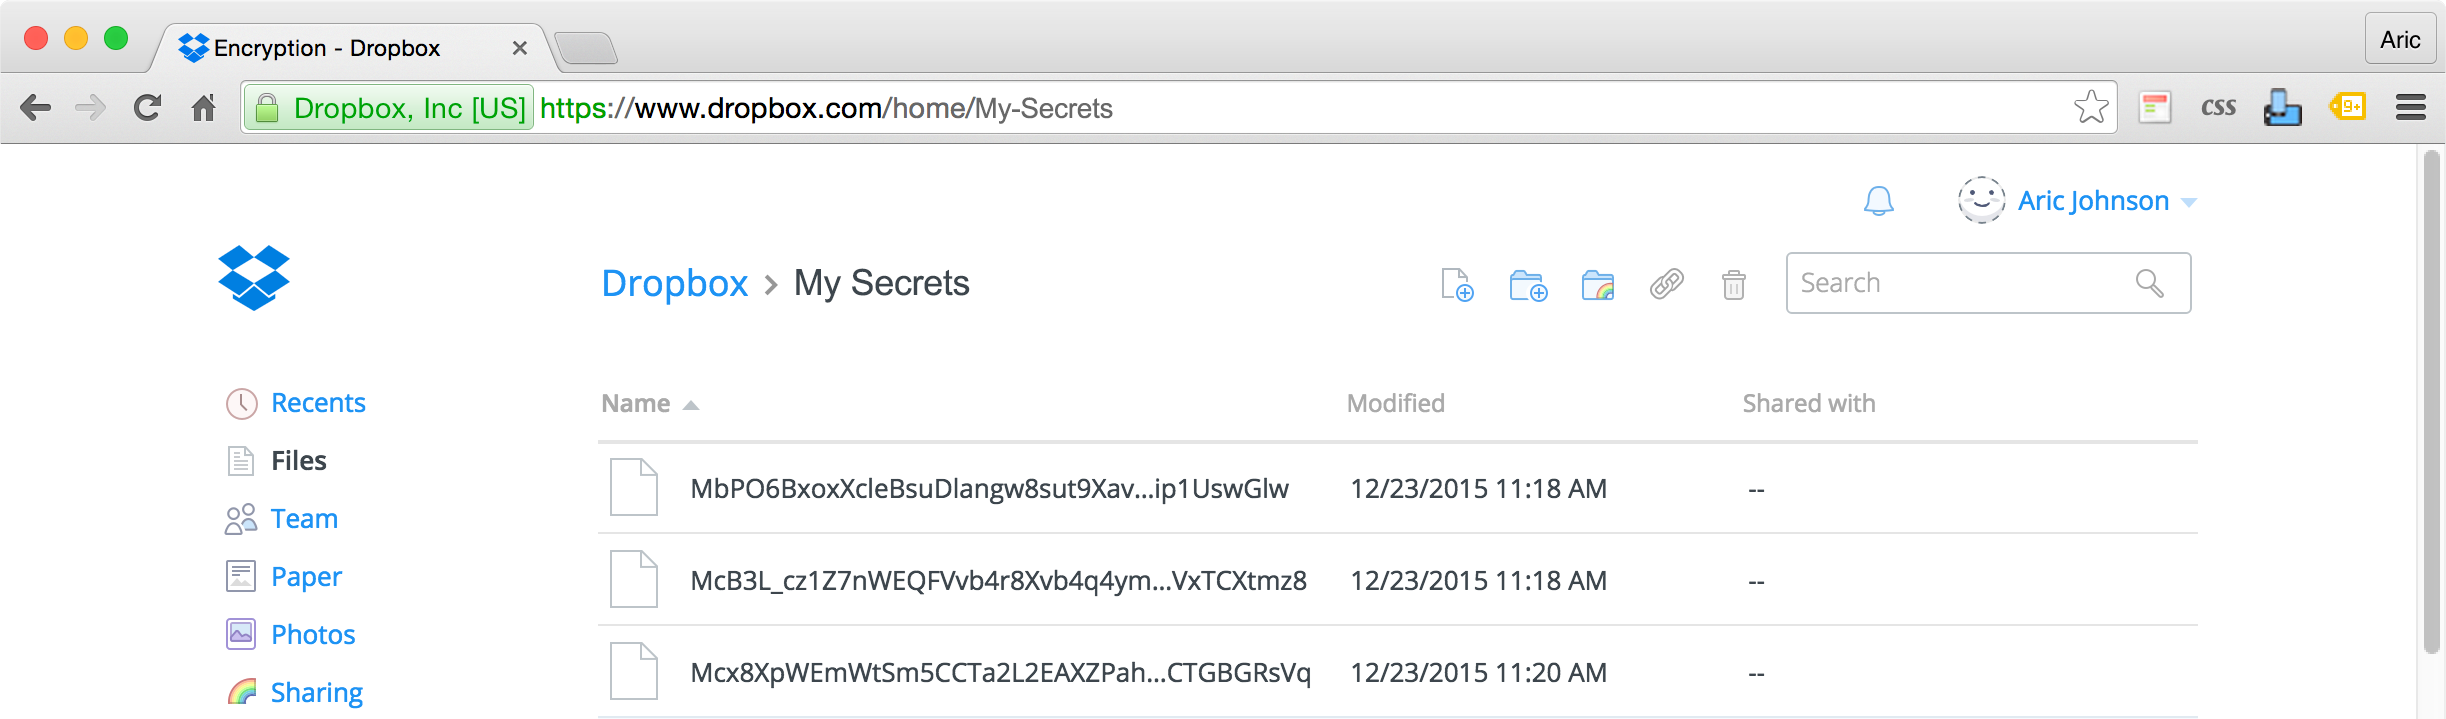 Files are encrypted in storage